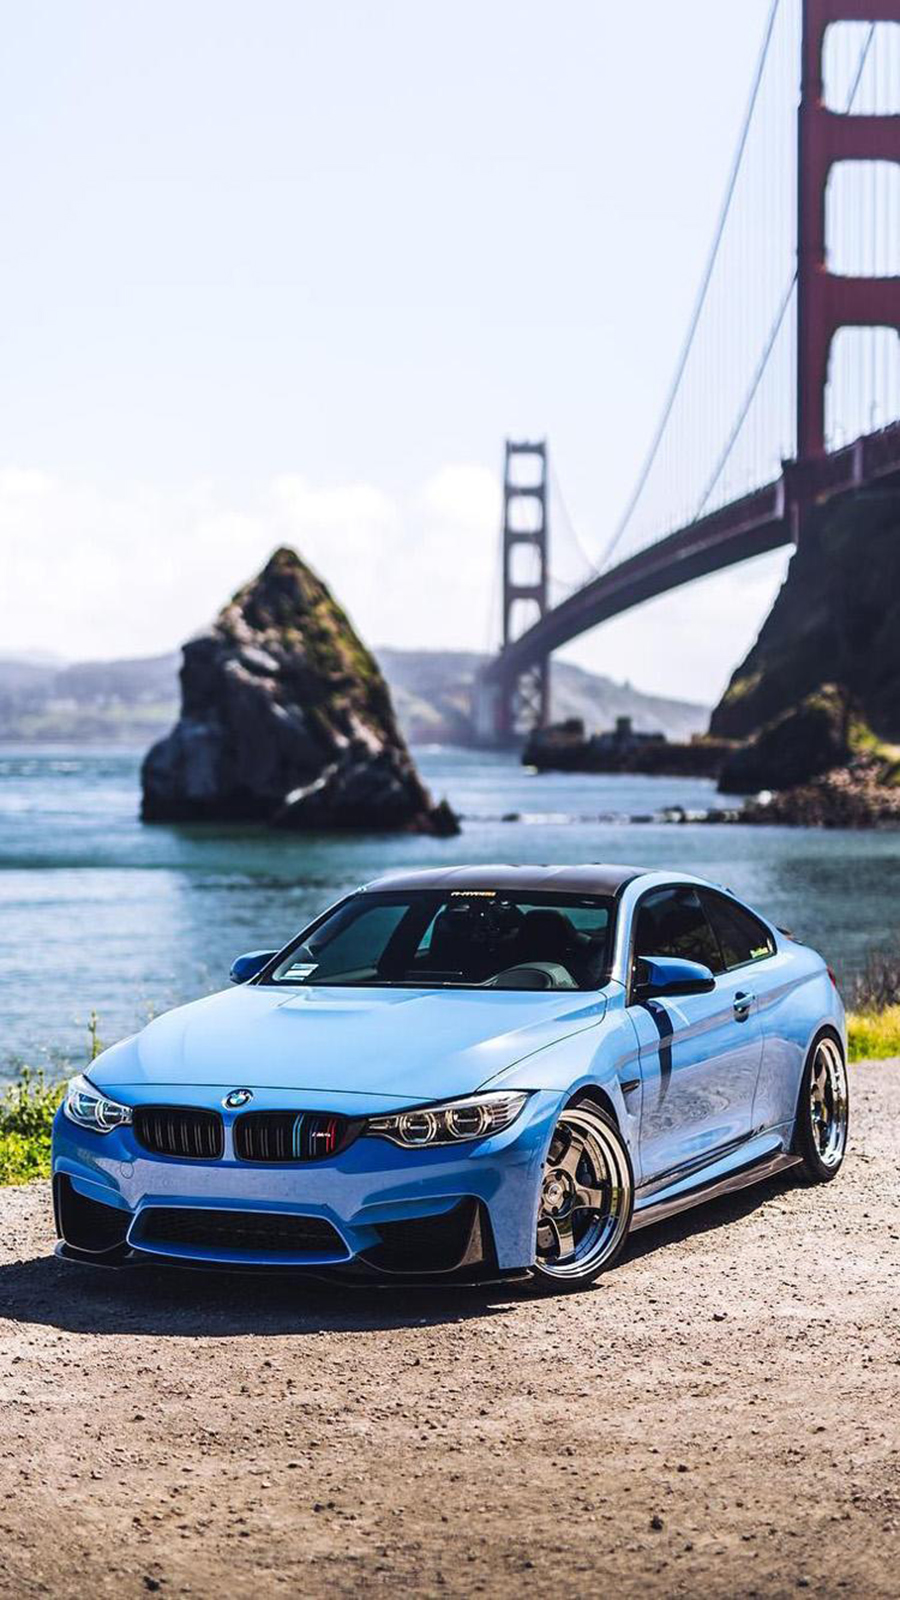 Moster Bmw Wallpaper – Most Popular BMW Wallpapers Free Download